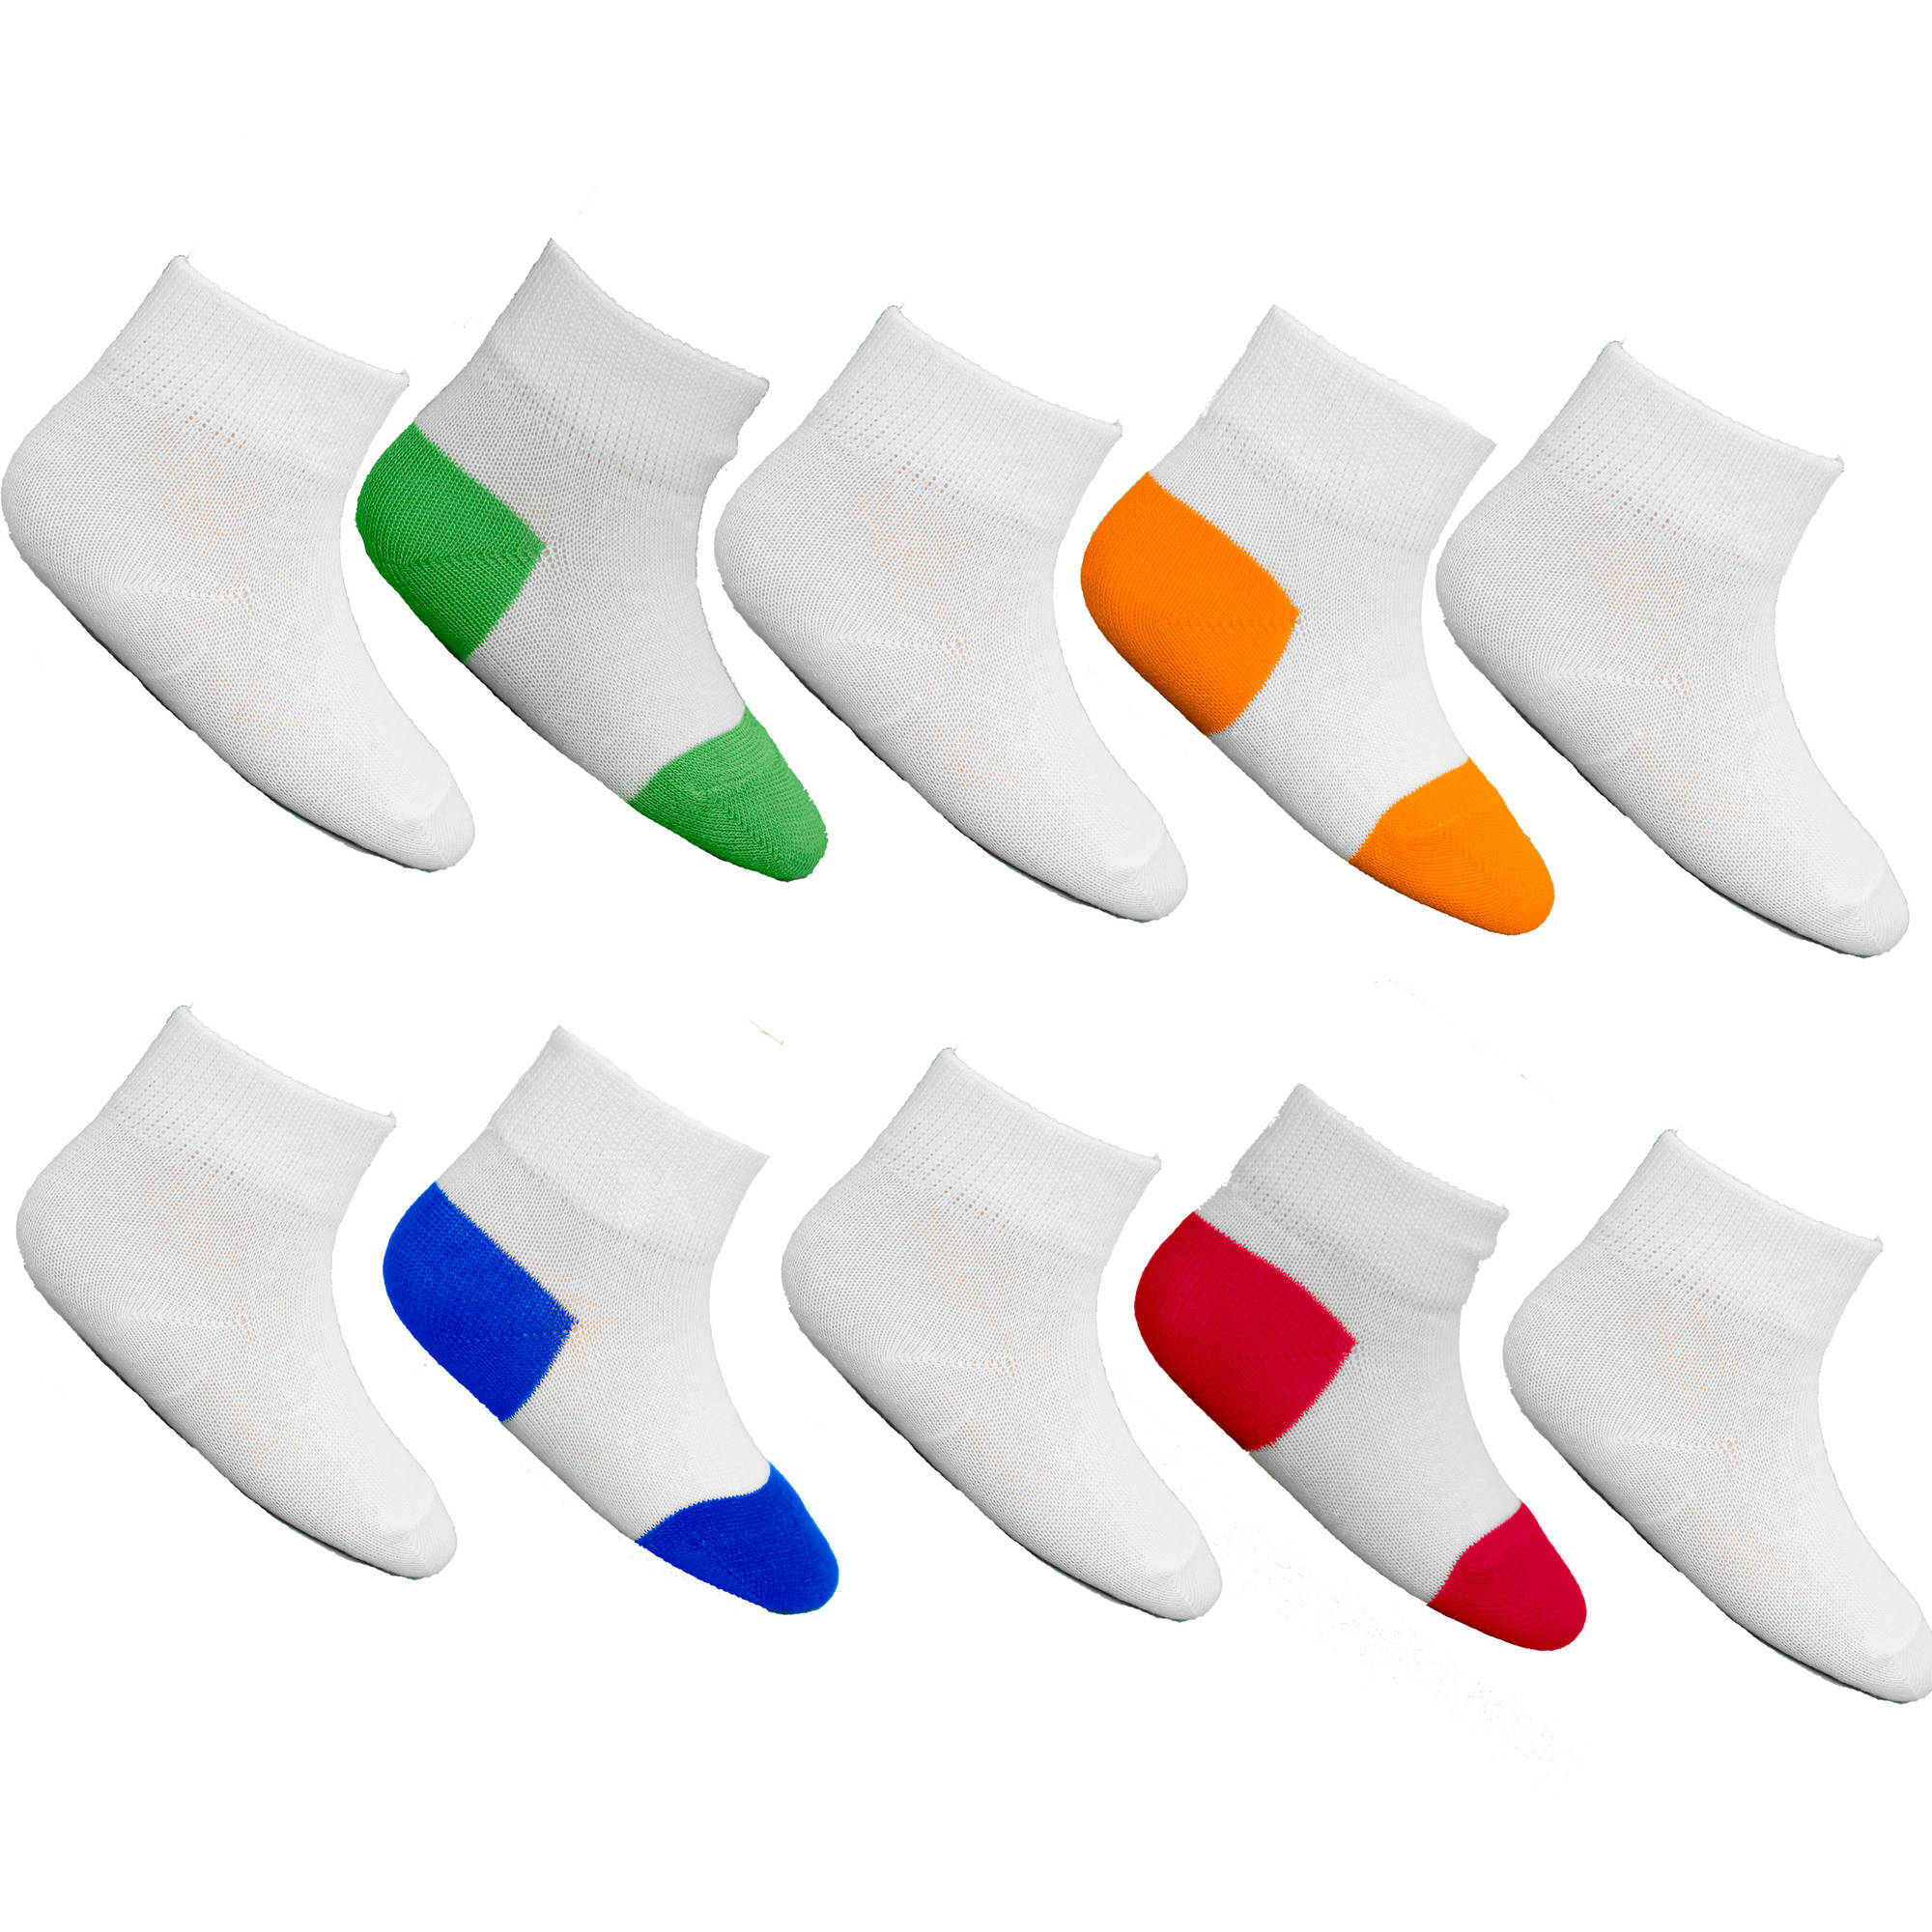 Fruit of the Loom Baby Boys' Tuff n' Comfy Ankle Socks 10-Pack